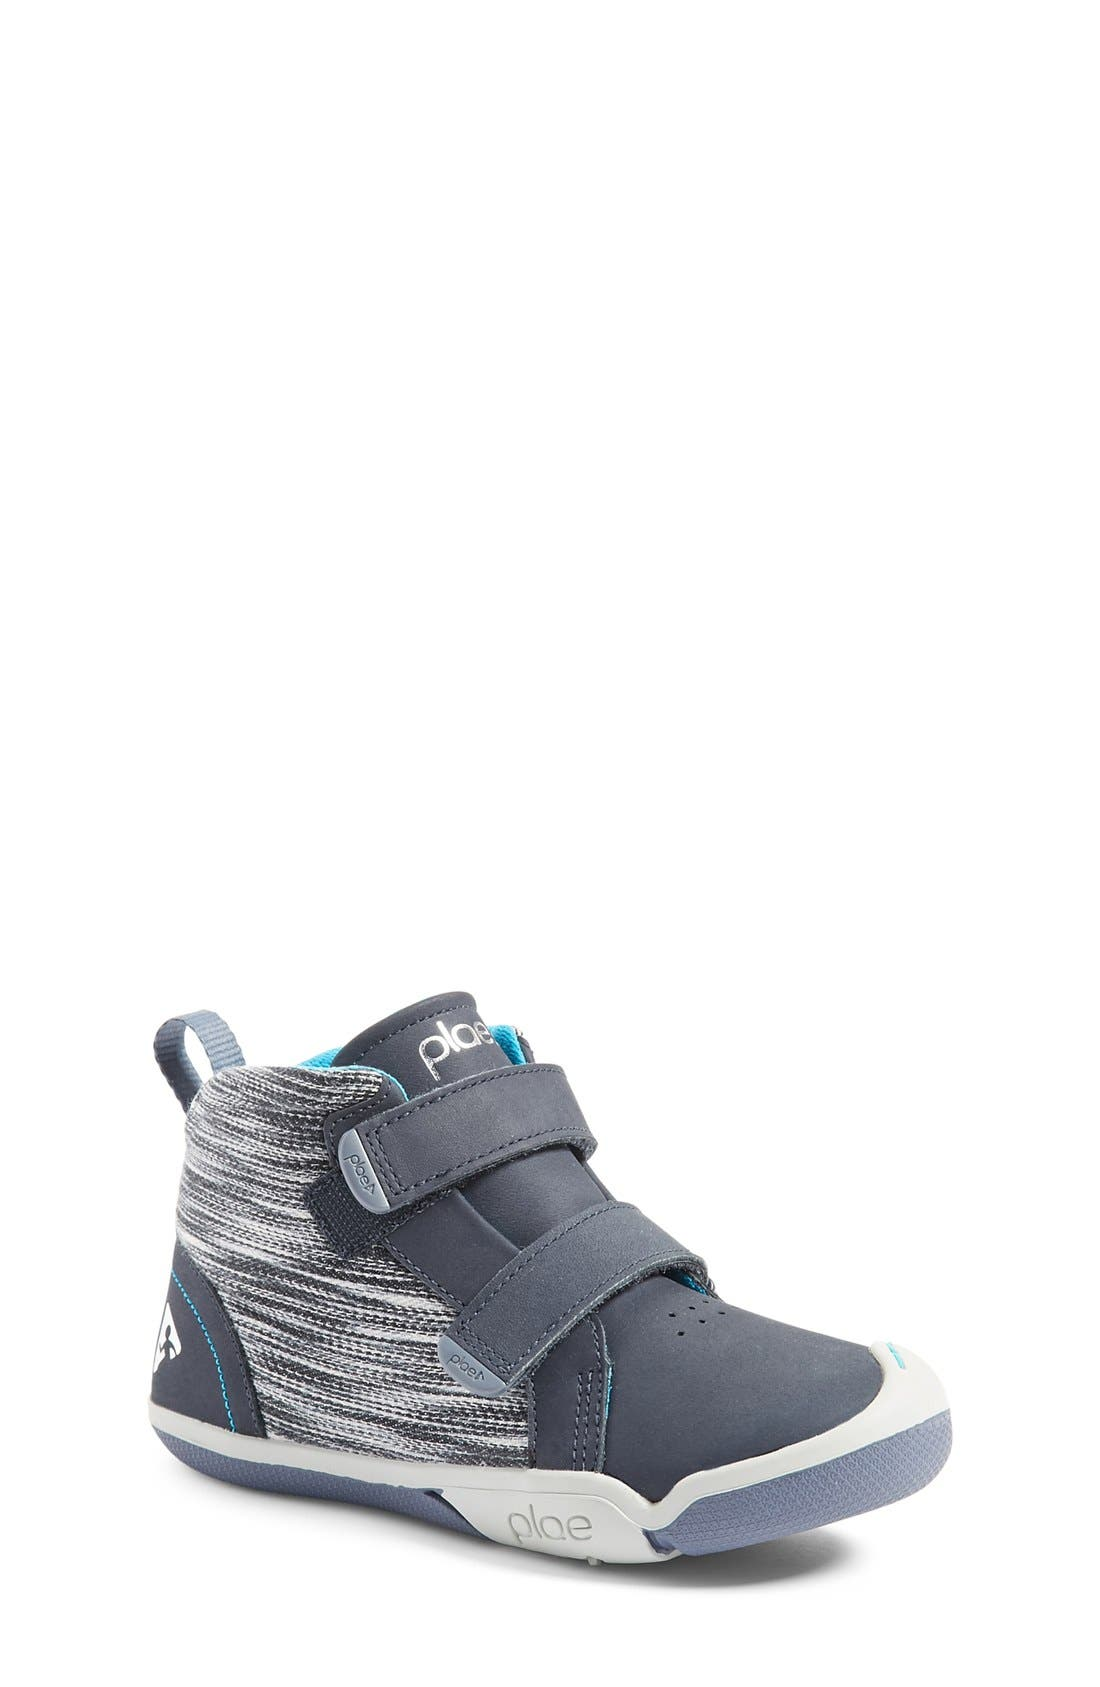 'Max' Customizable High Top Sneaker,                         Main,                         color, Leather Wind